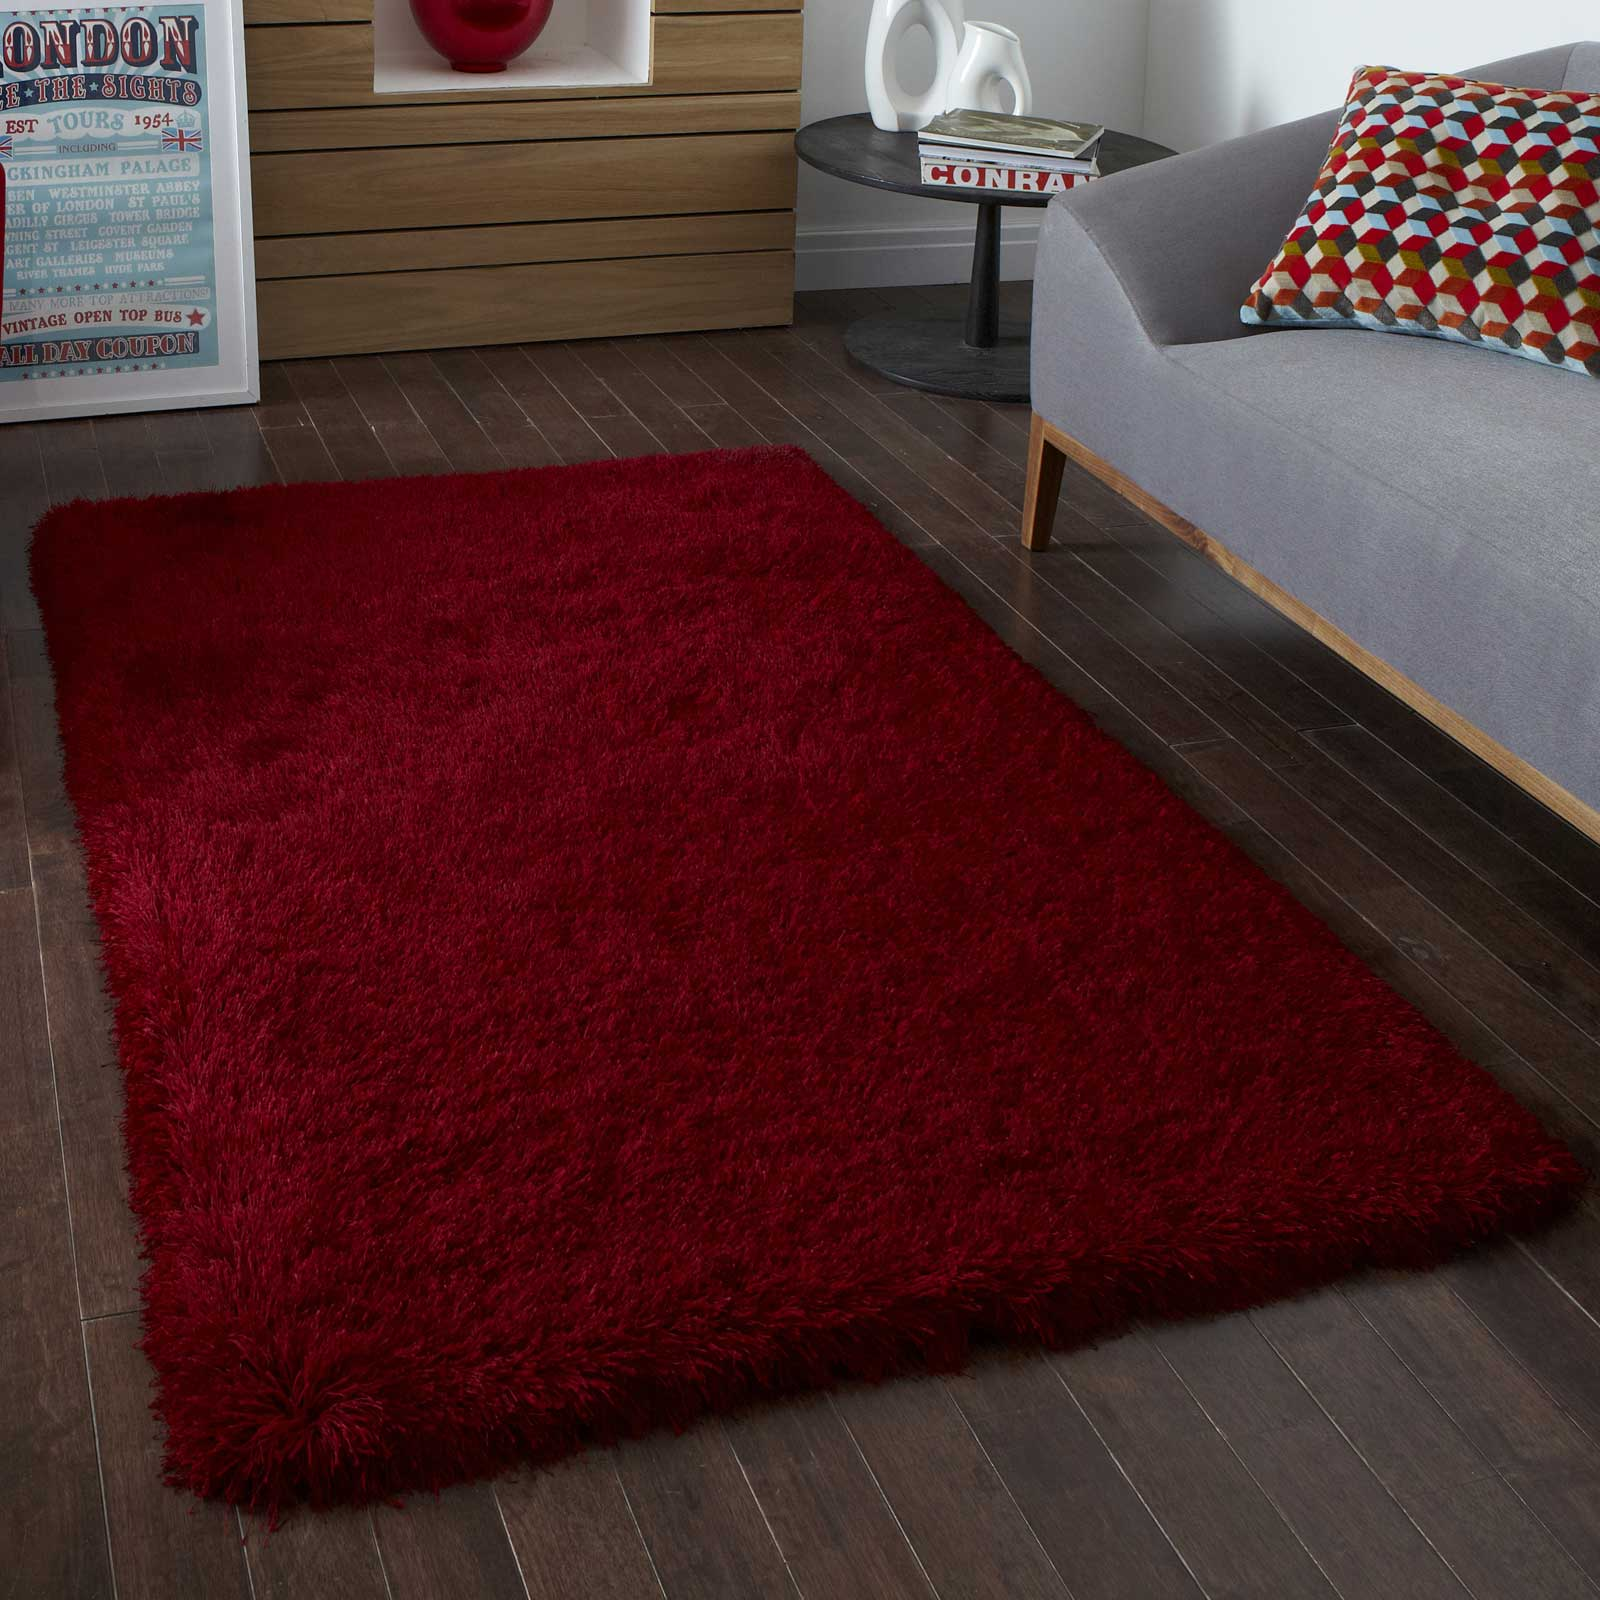 Monte Carlo Hand Made Shaggy Rugs in Red